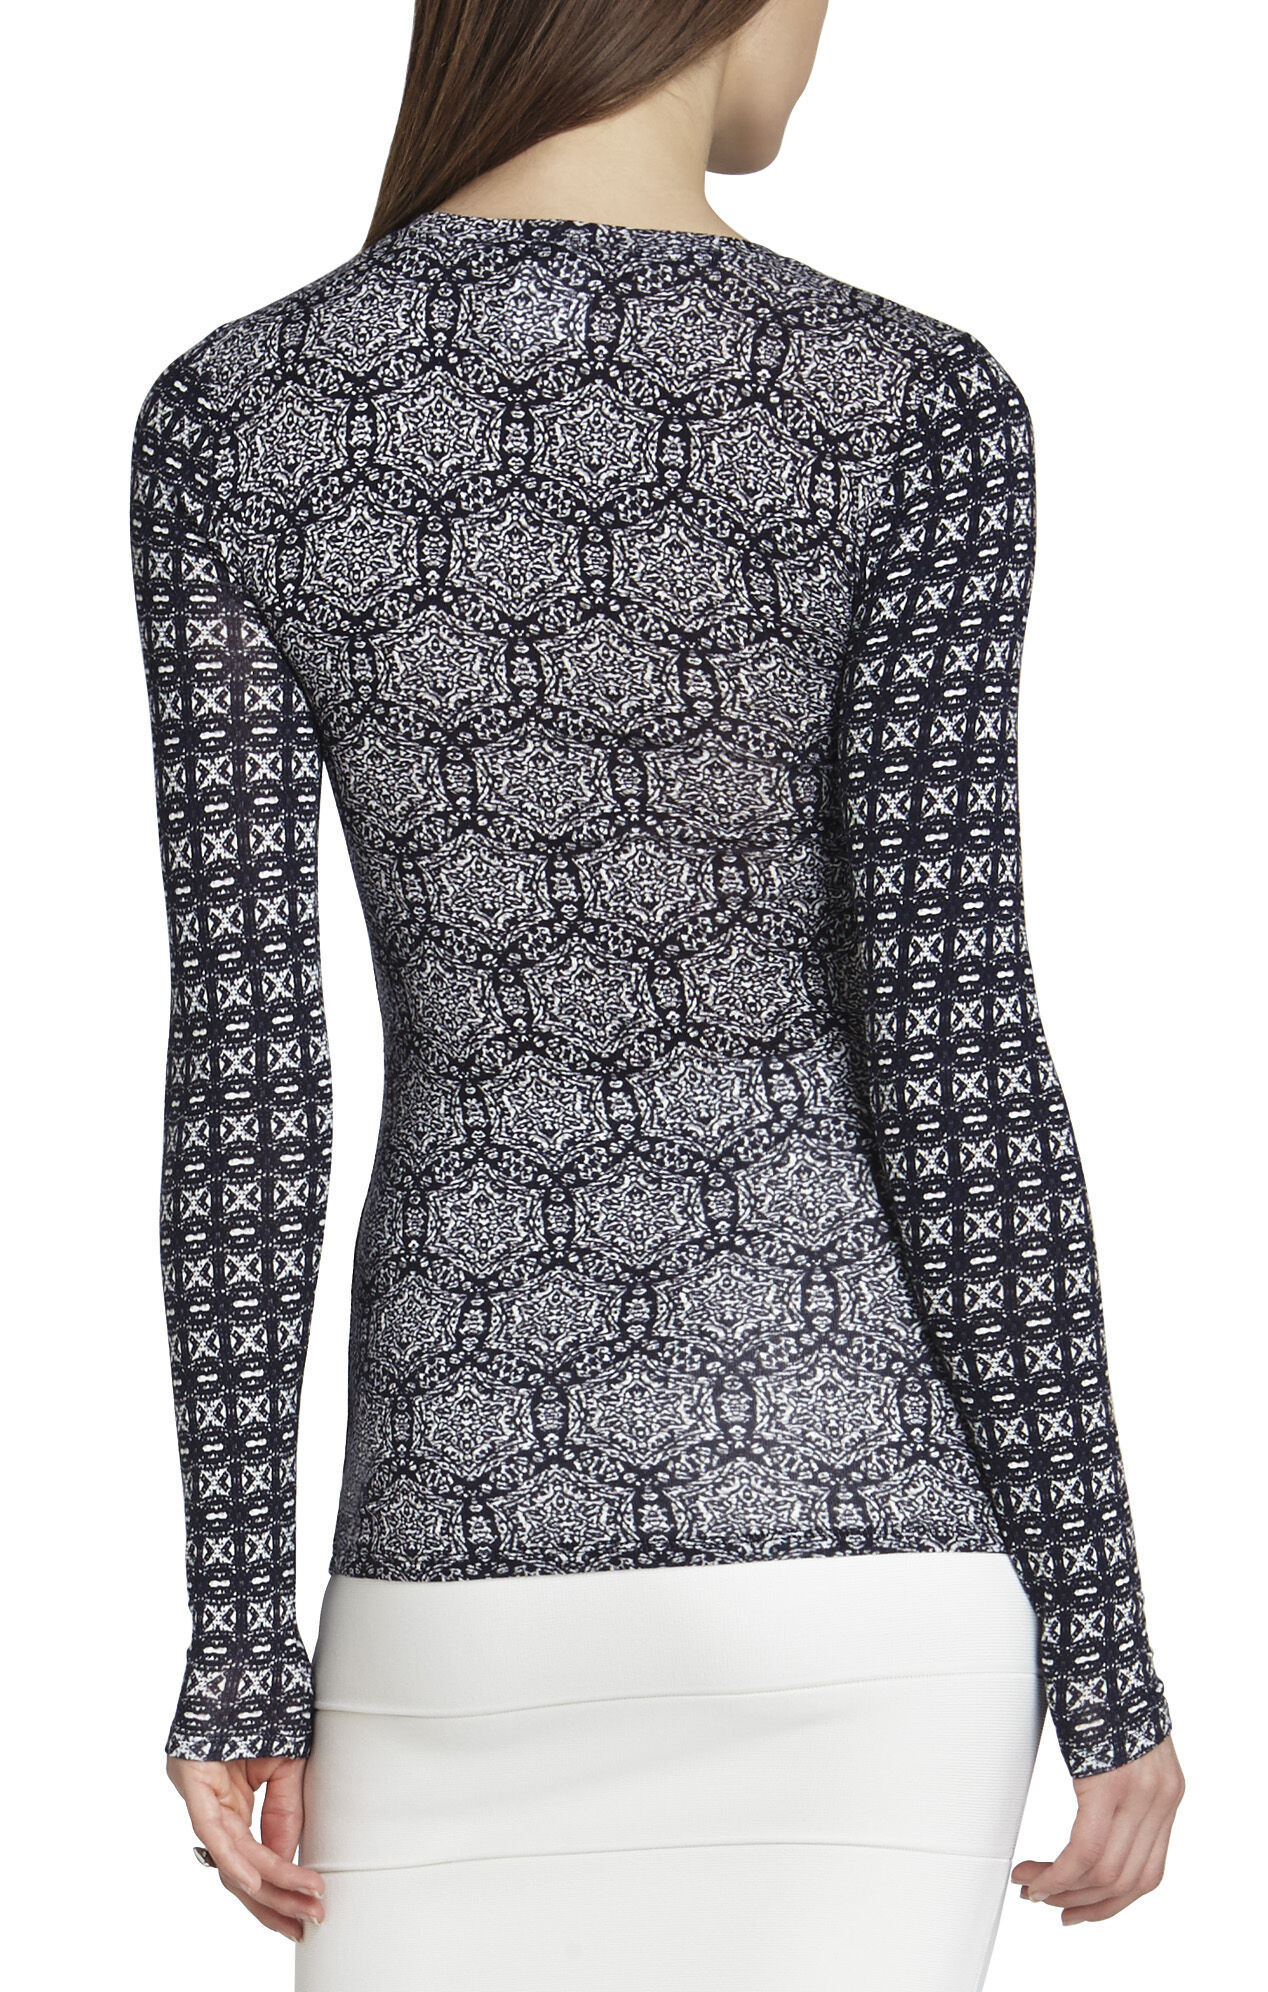 Agda Long-Sleeve Top